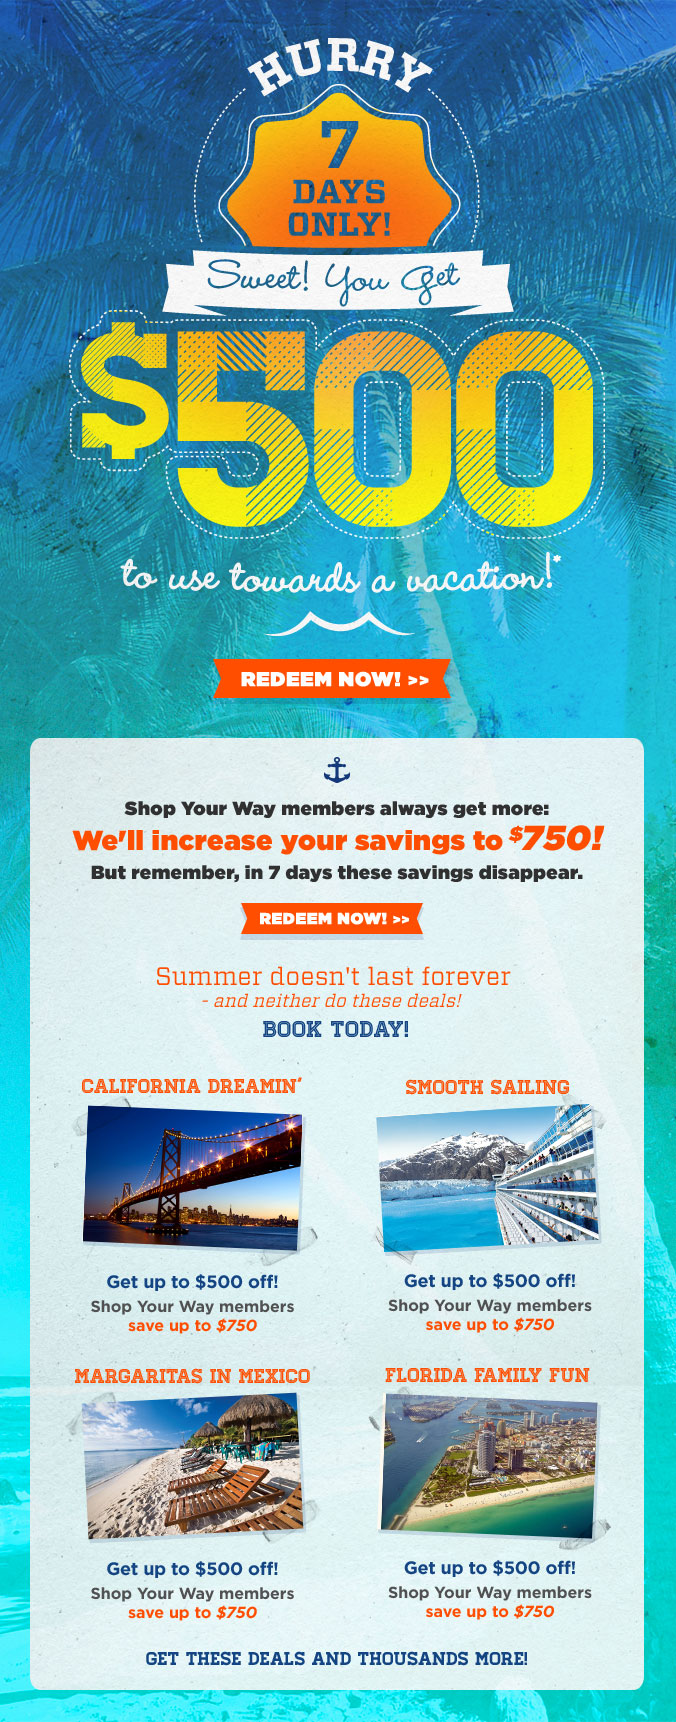 hurry 7 days only | sweet! you get $500 to use towards a vacation!* | redeem now | shop your way members always get more: we will increase your savings to $750! | summer doesn't last forever and neither do these deals! | book today! | california dreamin | smooth sailing | margaritas in mexico | florida family fun | get up to $500 off! shop your way members save up to $750 | get these deals and thousands more !